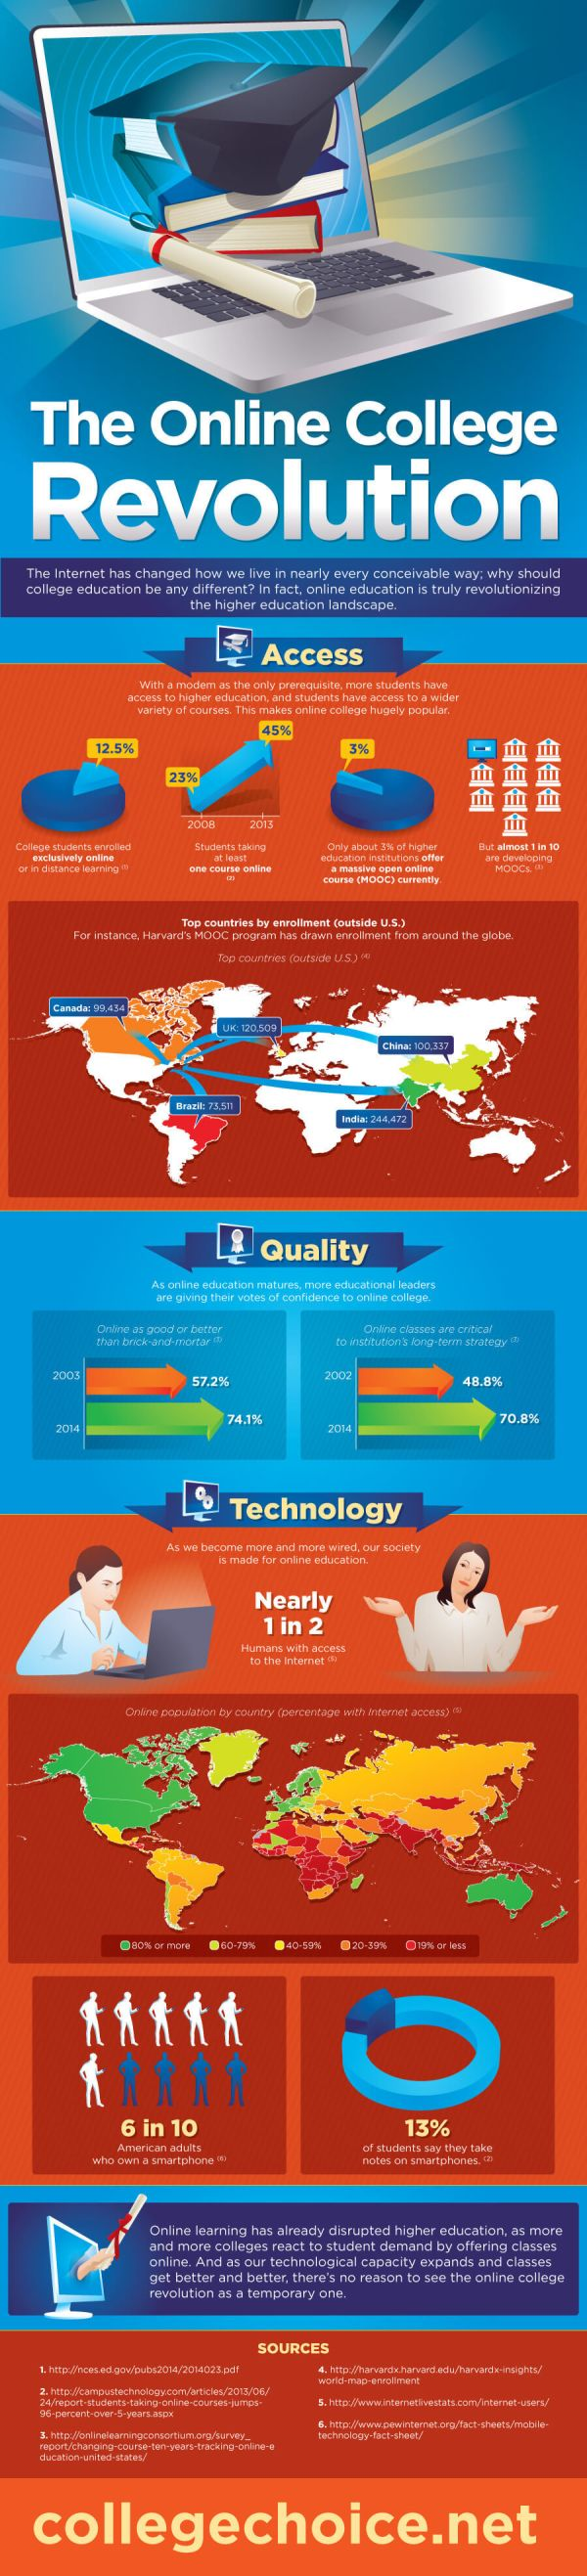 Online College Revolution Infographic - -learning